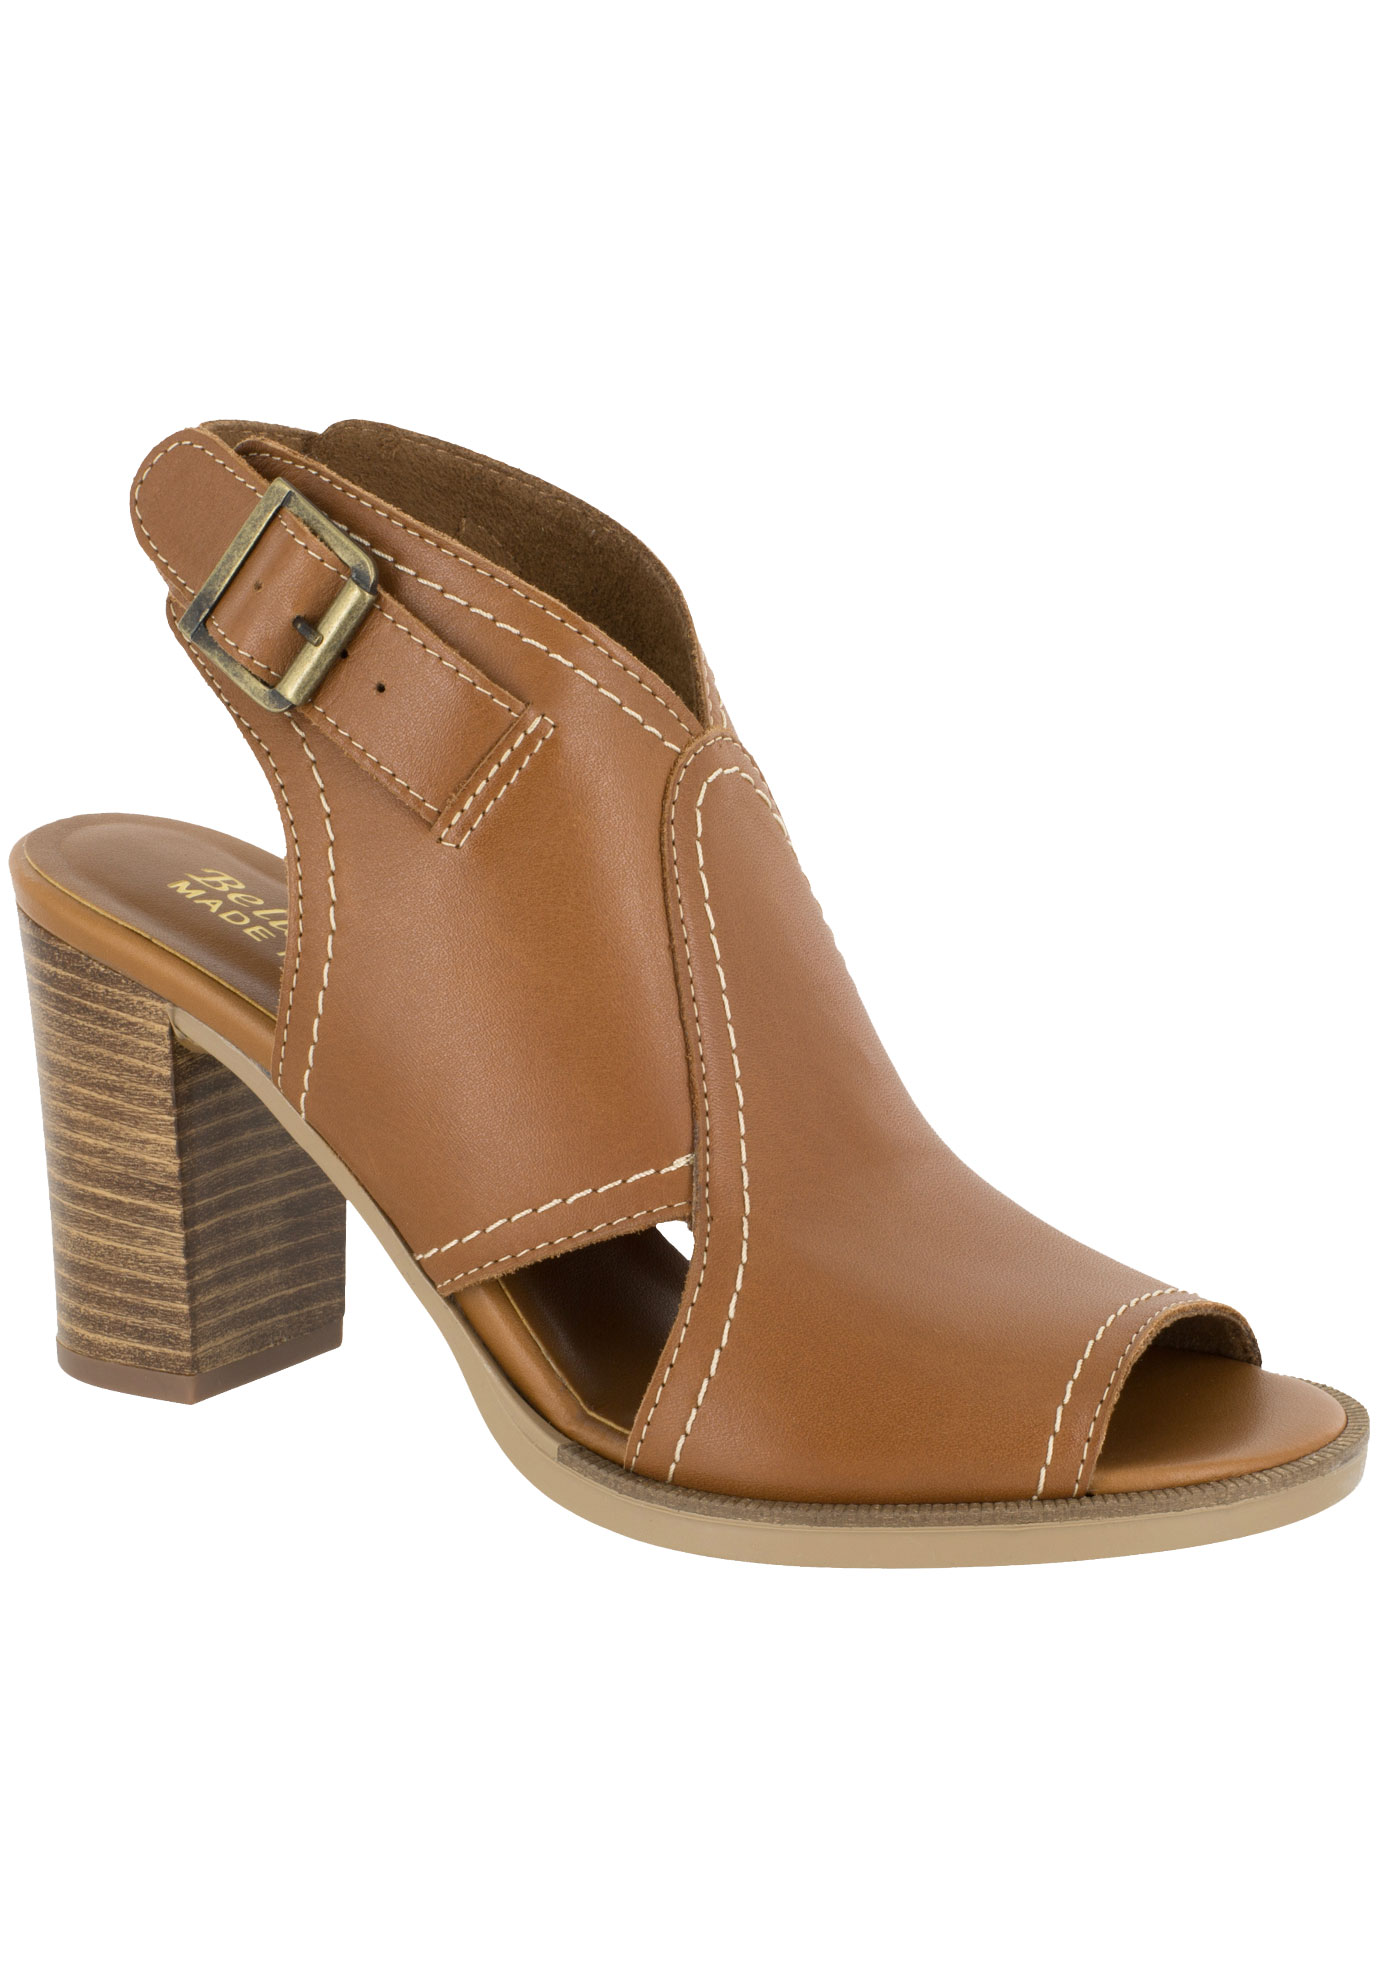 Viv-Italy Pumps by Bella Vita®, WHISKEY LEATHER, hi-res